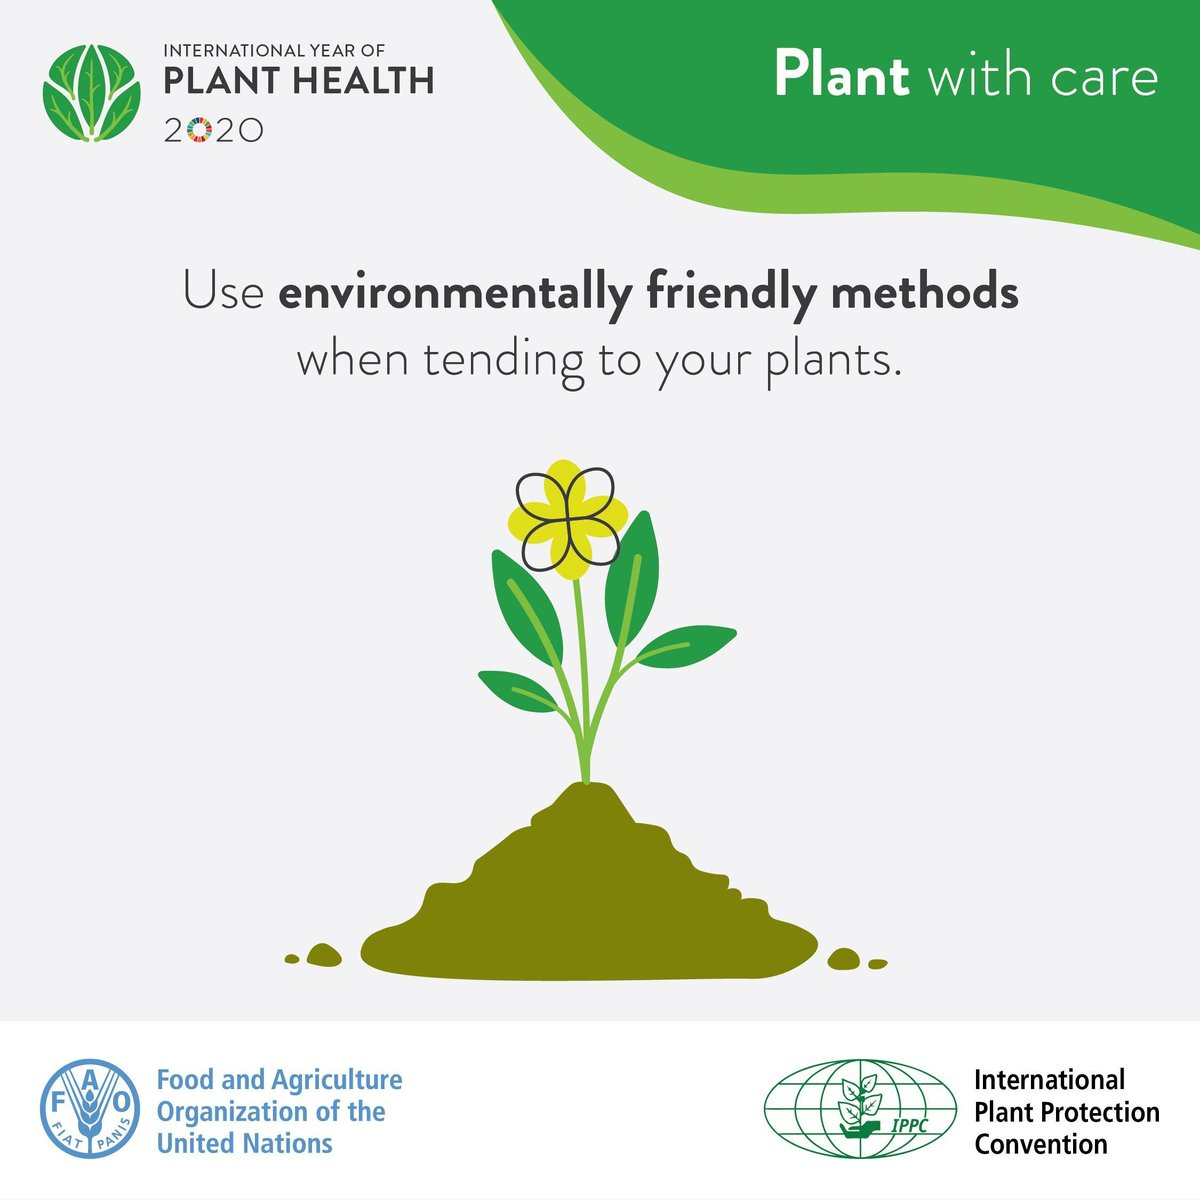 Do you have a garden? Be sure to take care of your plants and the environment by using environmentally friendly methods.   Here is more on what you can do to protect #PlantHealth:    #IYPH2020